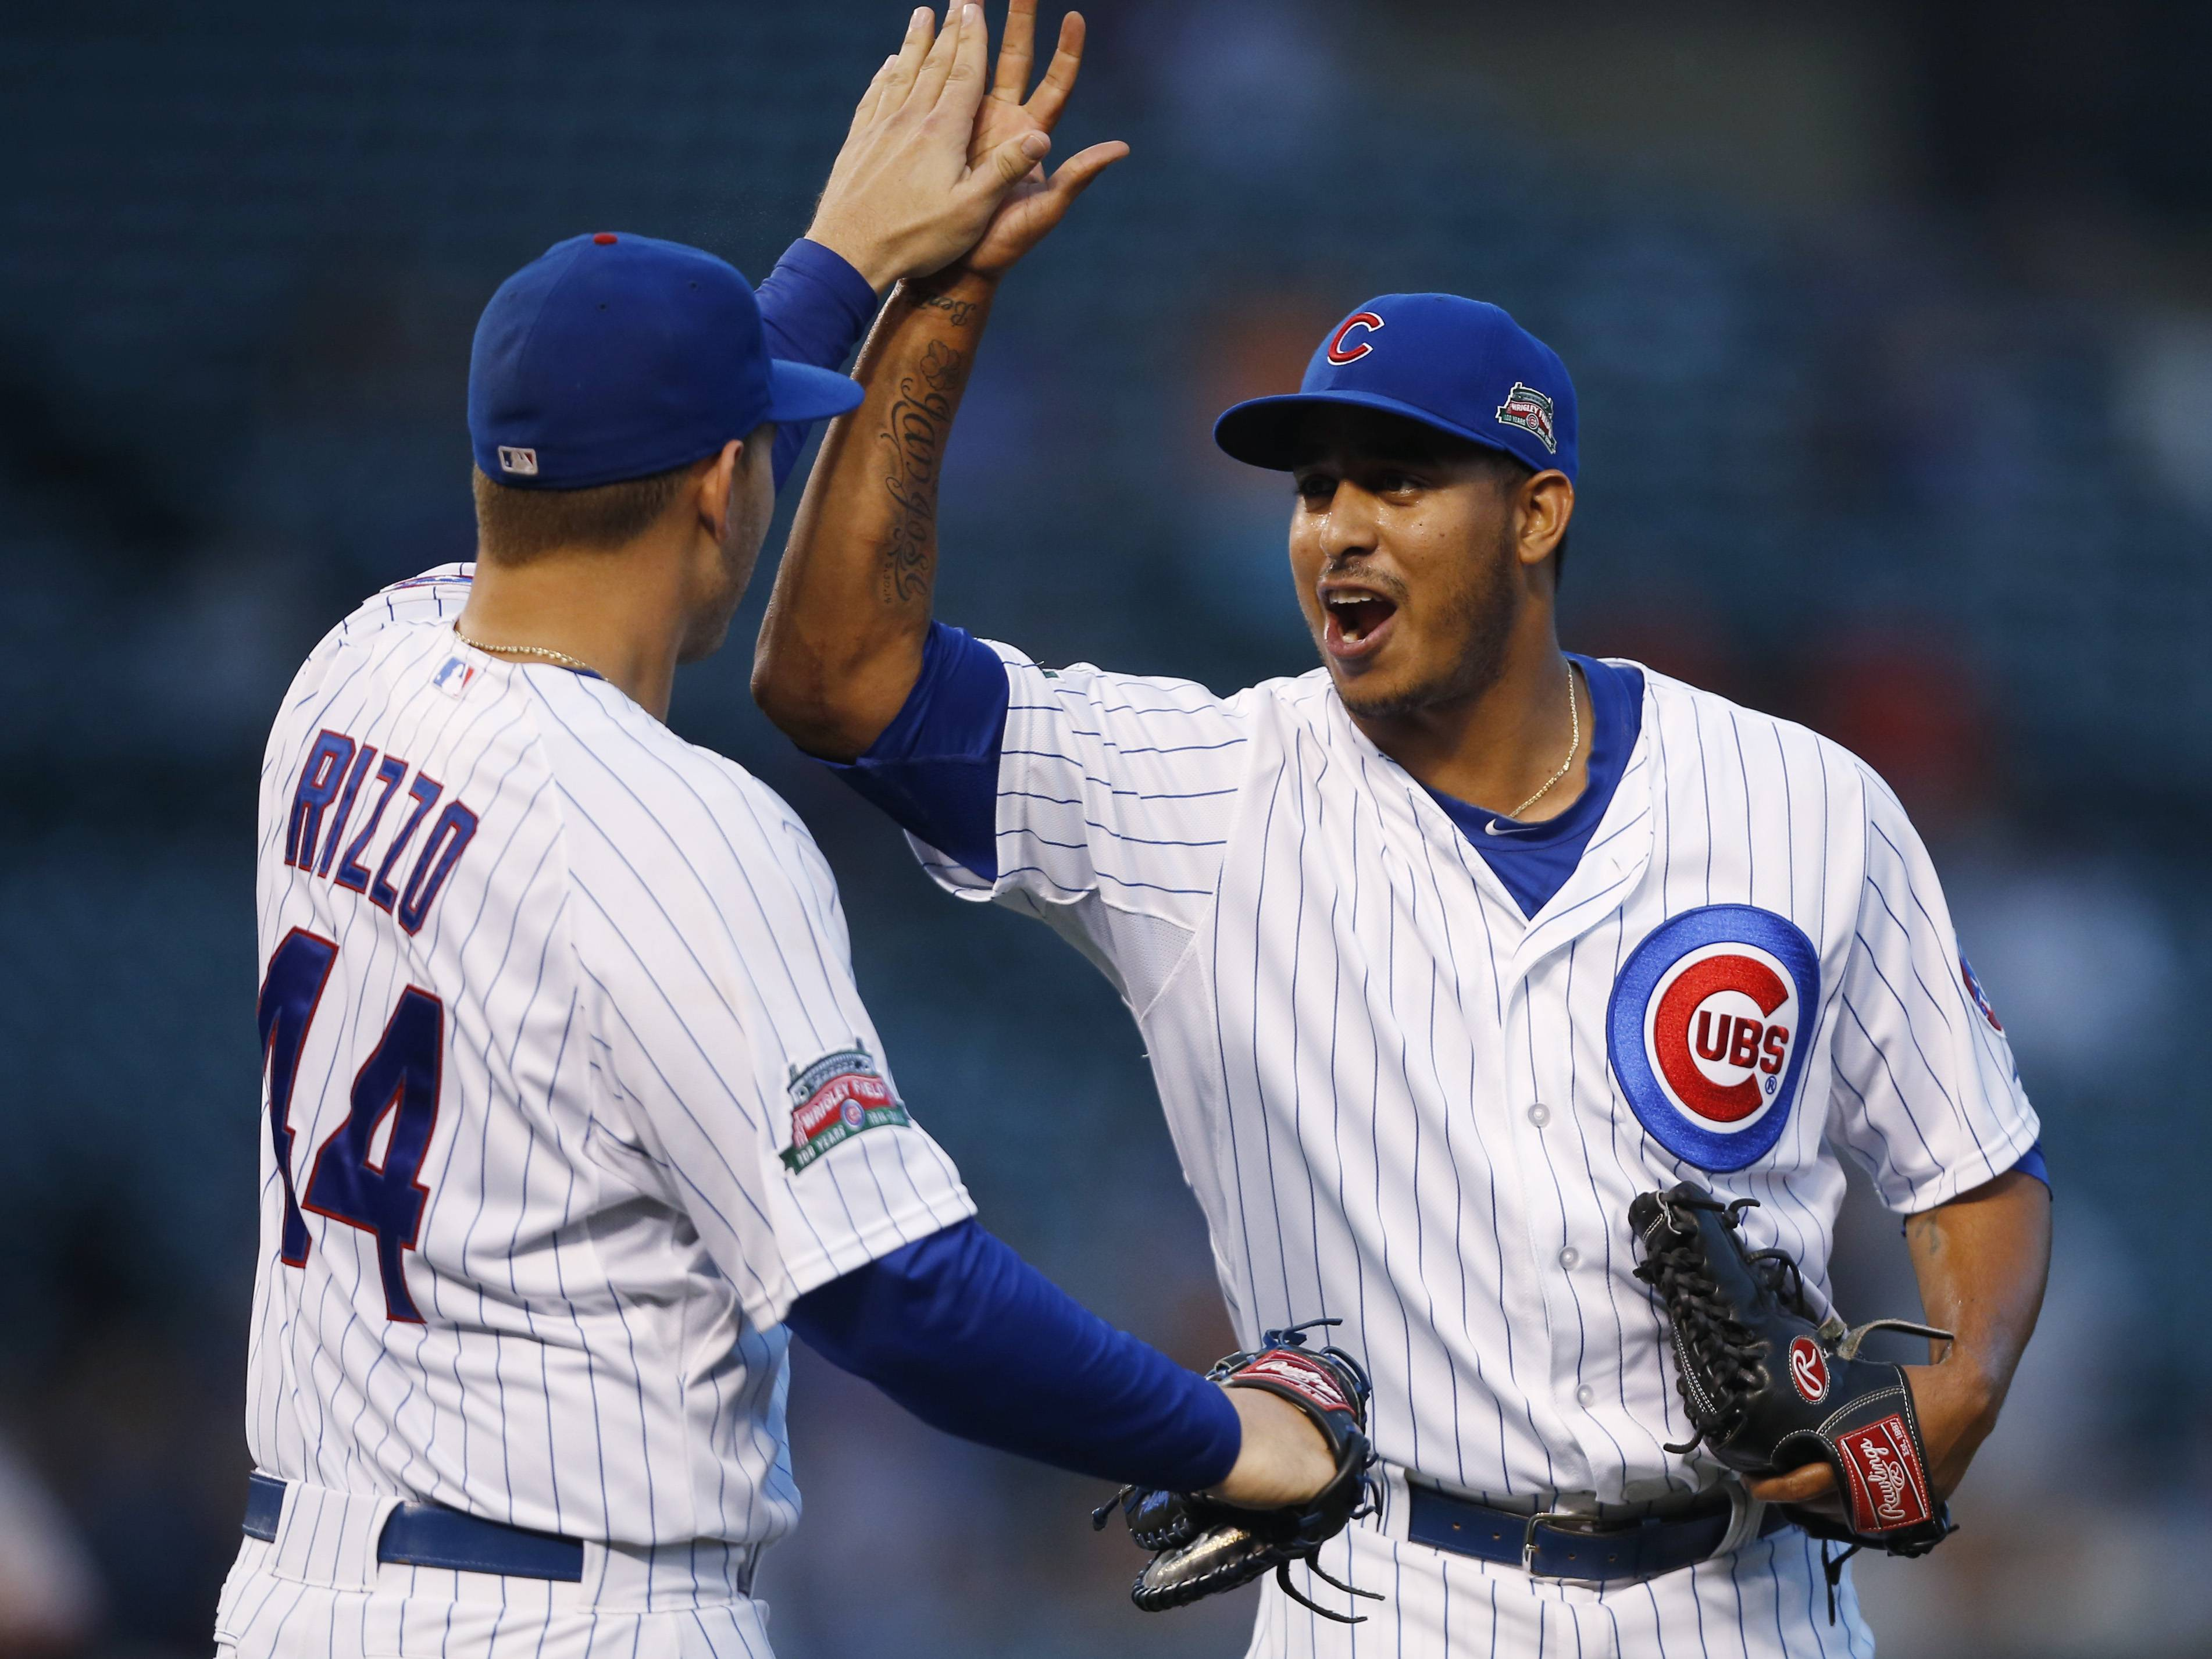 Cubs first baseman Anthony Rizzo and relief pitcher Hector Rondon celebrate after defeating the Giants in a continuation of a rain-suspended baseball game that began Tuesday and ended Thursday.